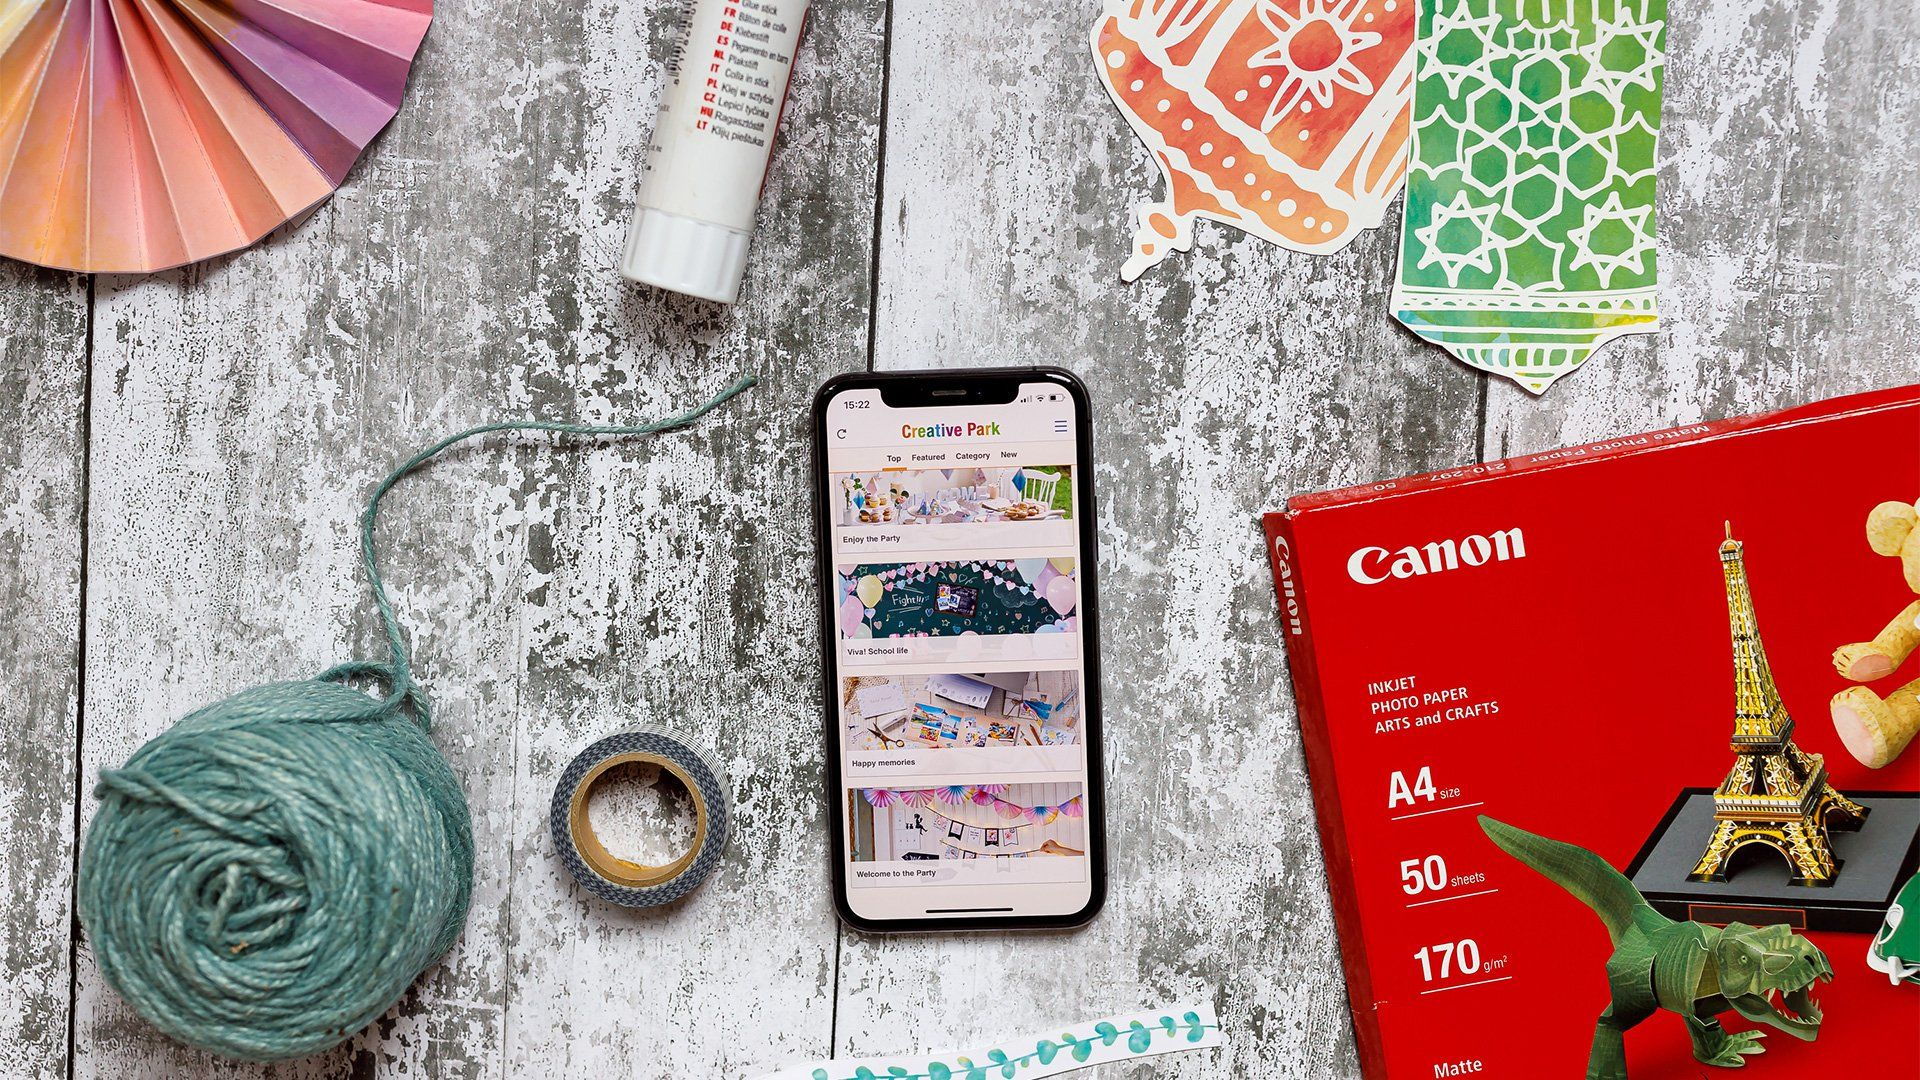 A smartphone displaying the Creative Park app surrounded by Canon printer paper, Creative Park designs and crafting tools.